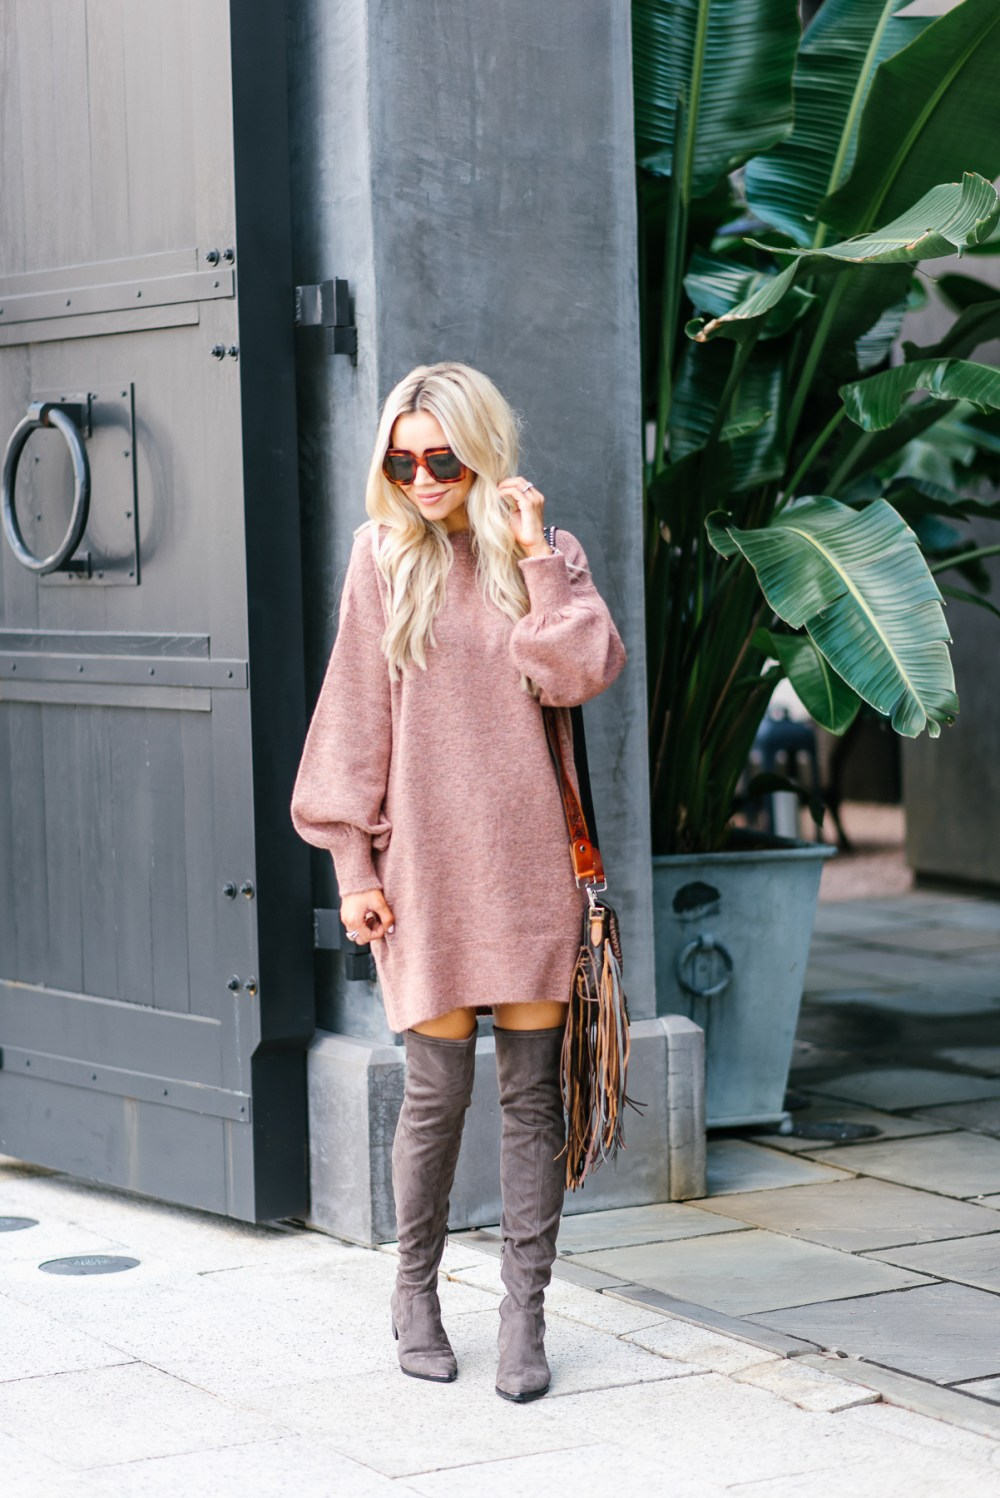 Fall staple clothing item! This over-sized sweater dress can be worn so many ways! Over the knee boots are giving the outfit a chic look!